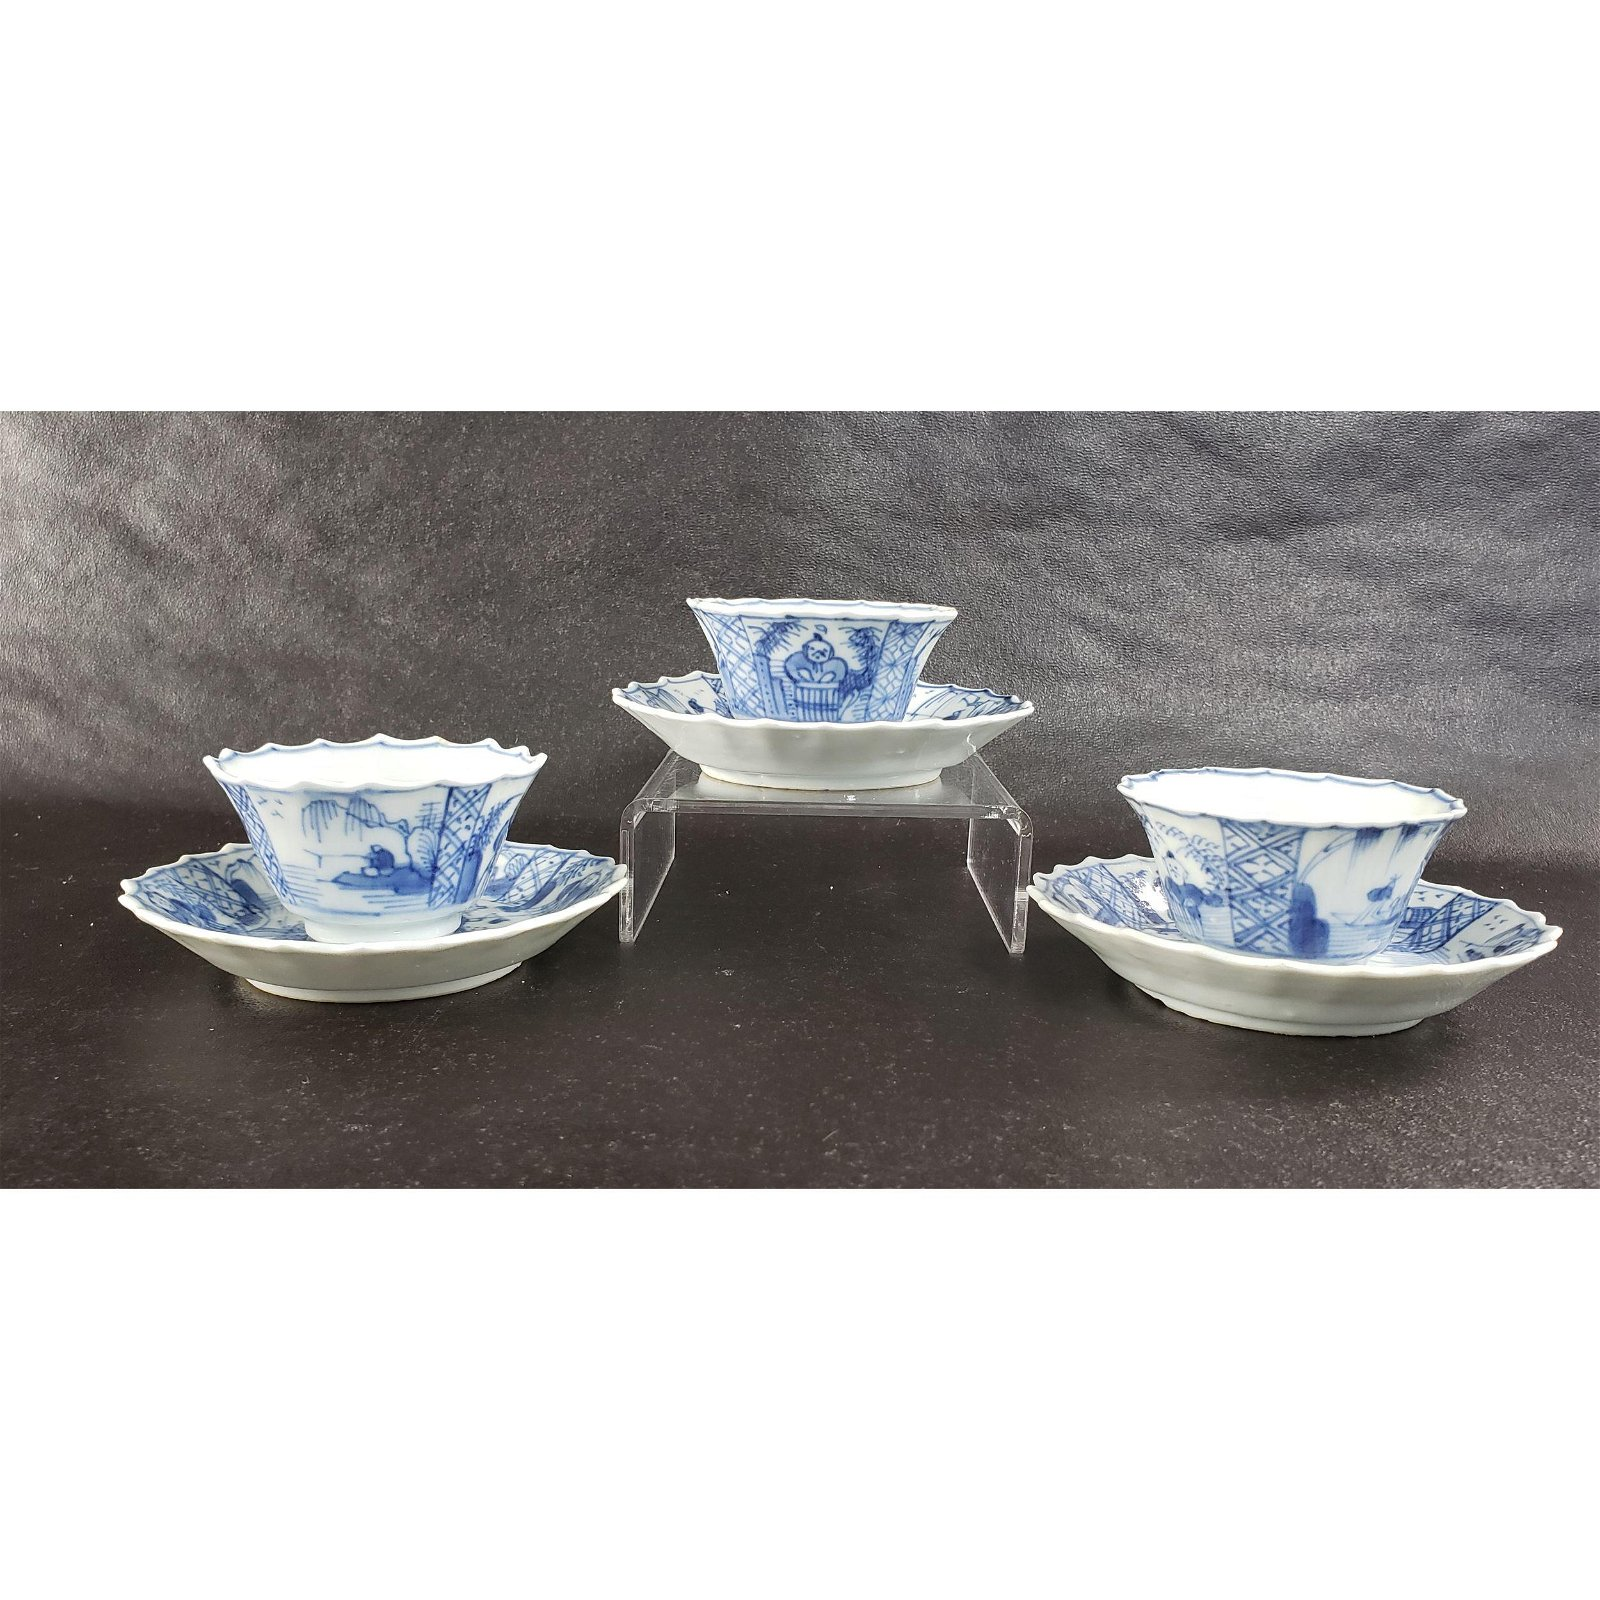 3 Chinese Porcelain Blue & White Cups / Saucers 17-18 c